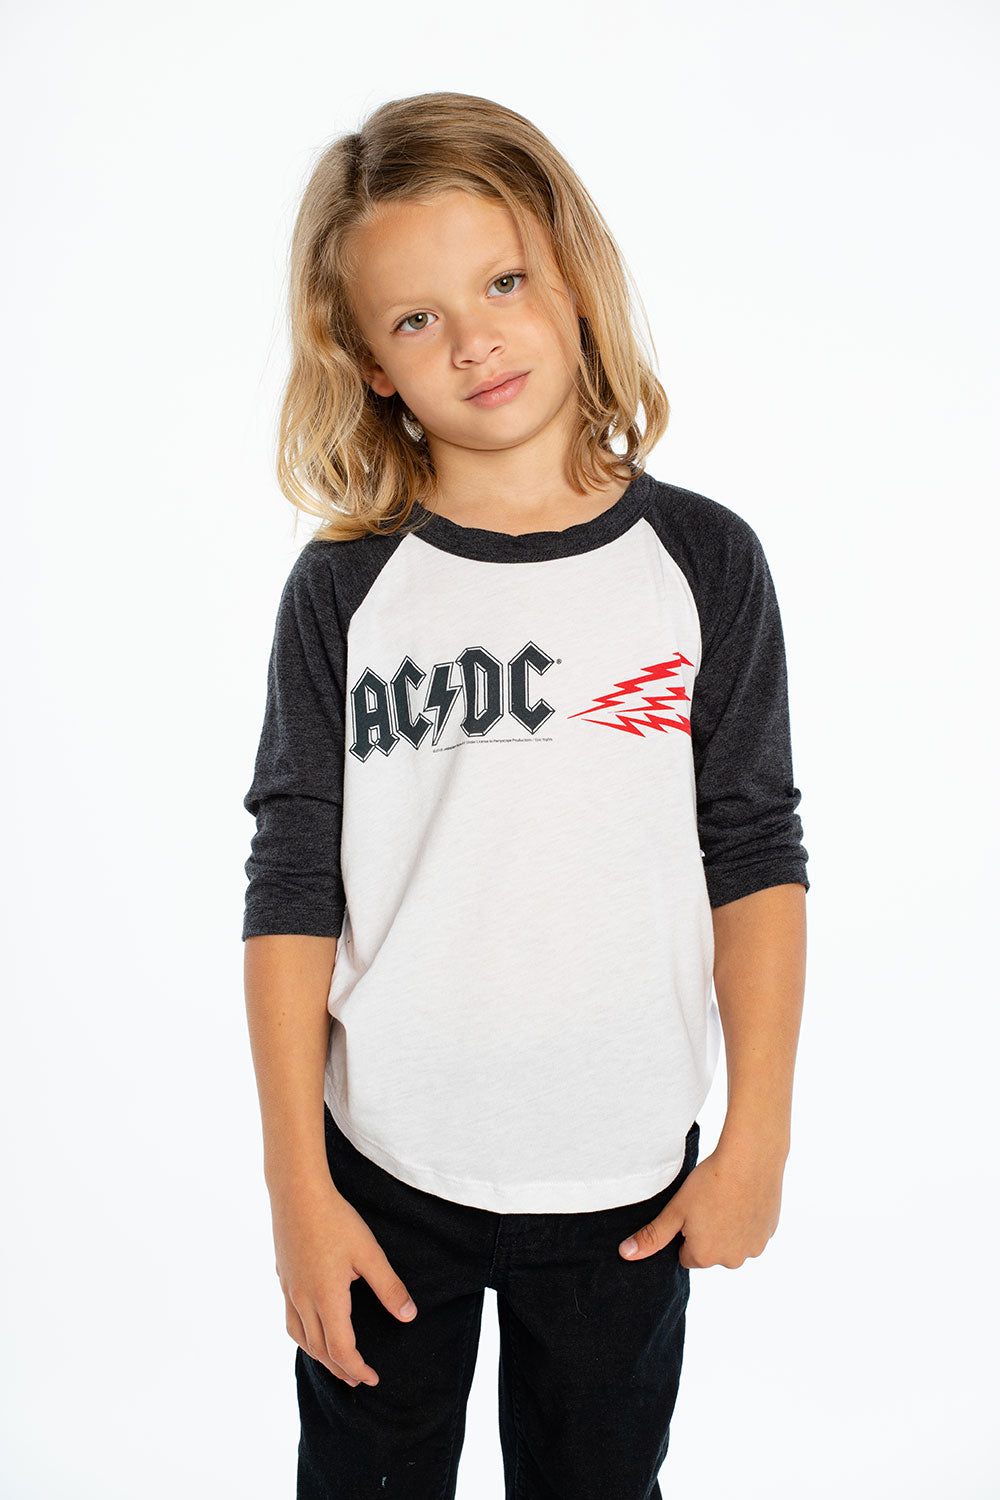 e8f2a7d8 ACDC - Red Lightning, BOYS, chaserbrand.com,chaser clothing,chaser apparel